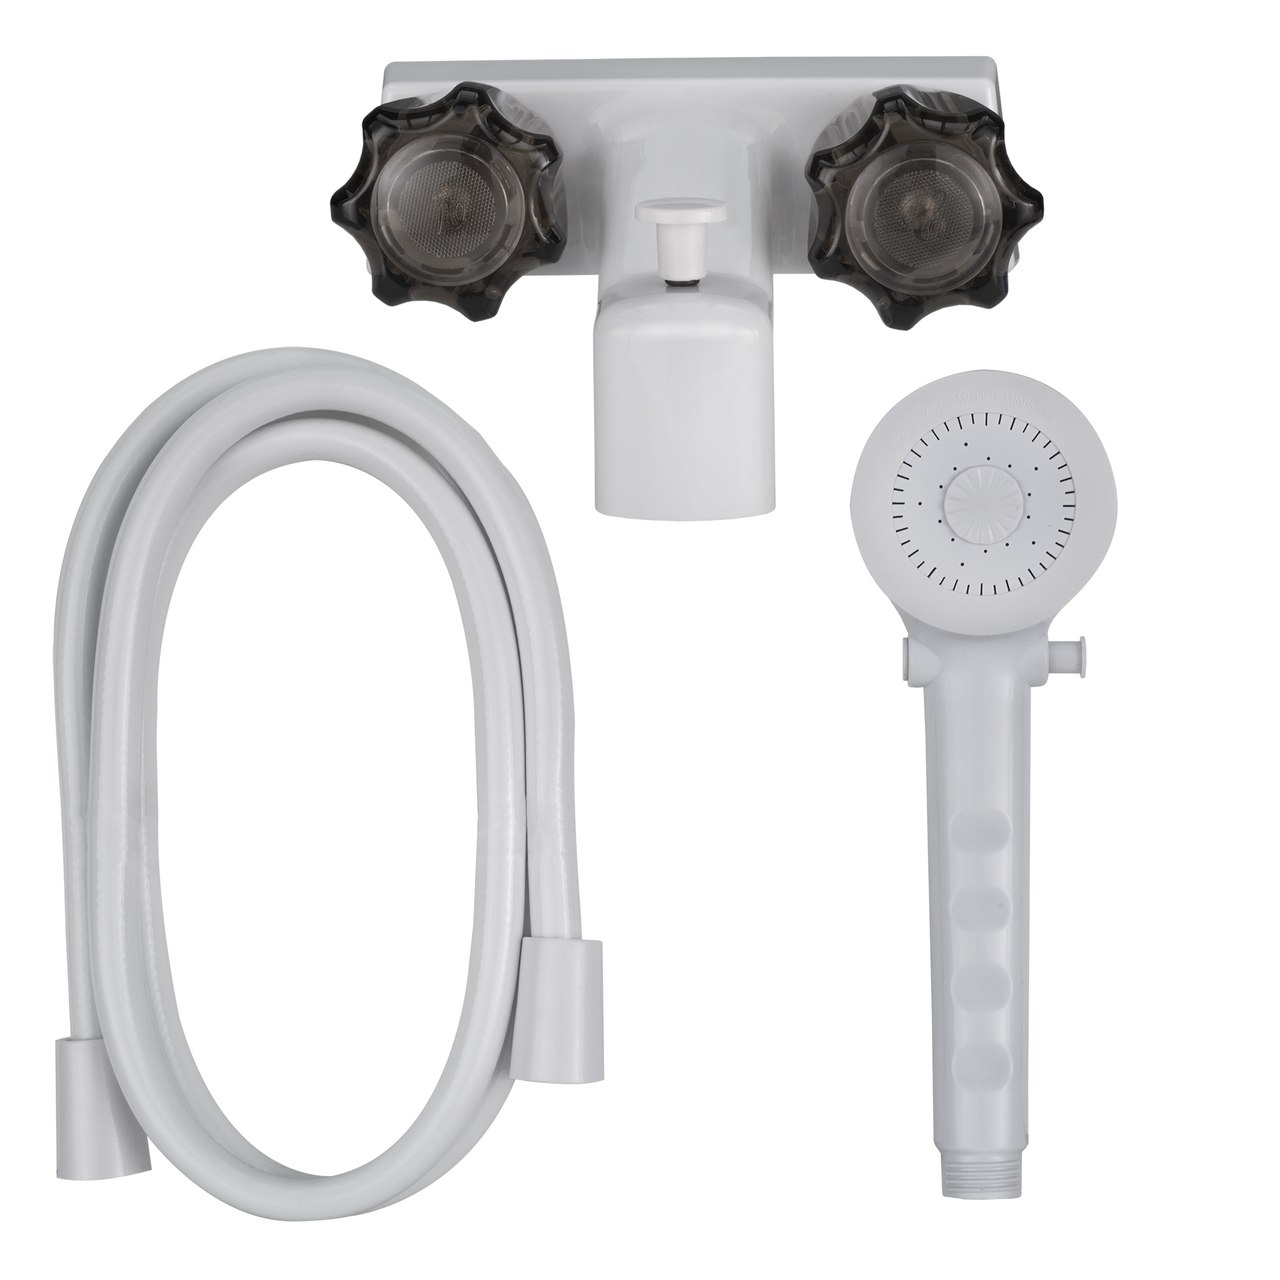 4 Rv Tub And Shower Diverter Faucet White Smoke With Handheld Shower Head Hose